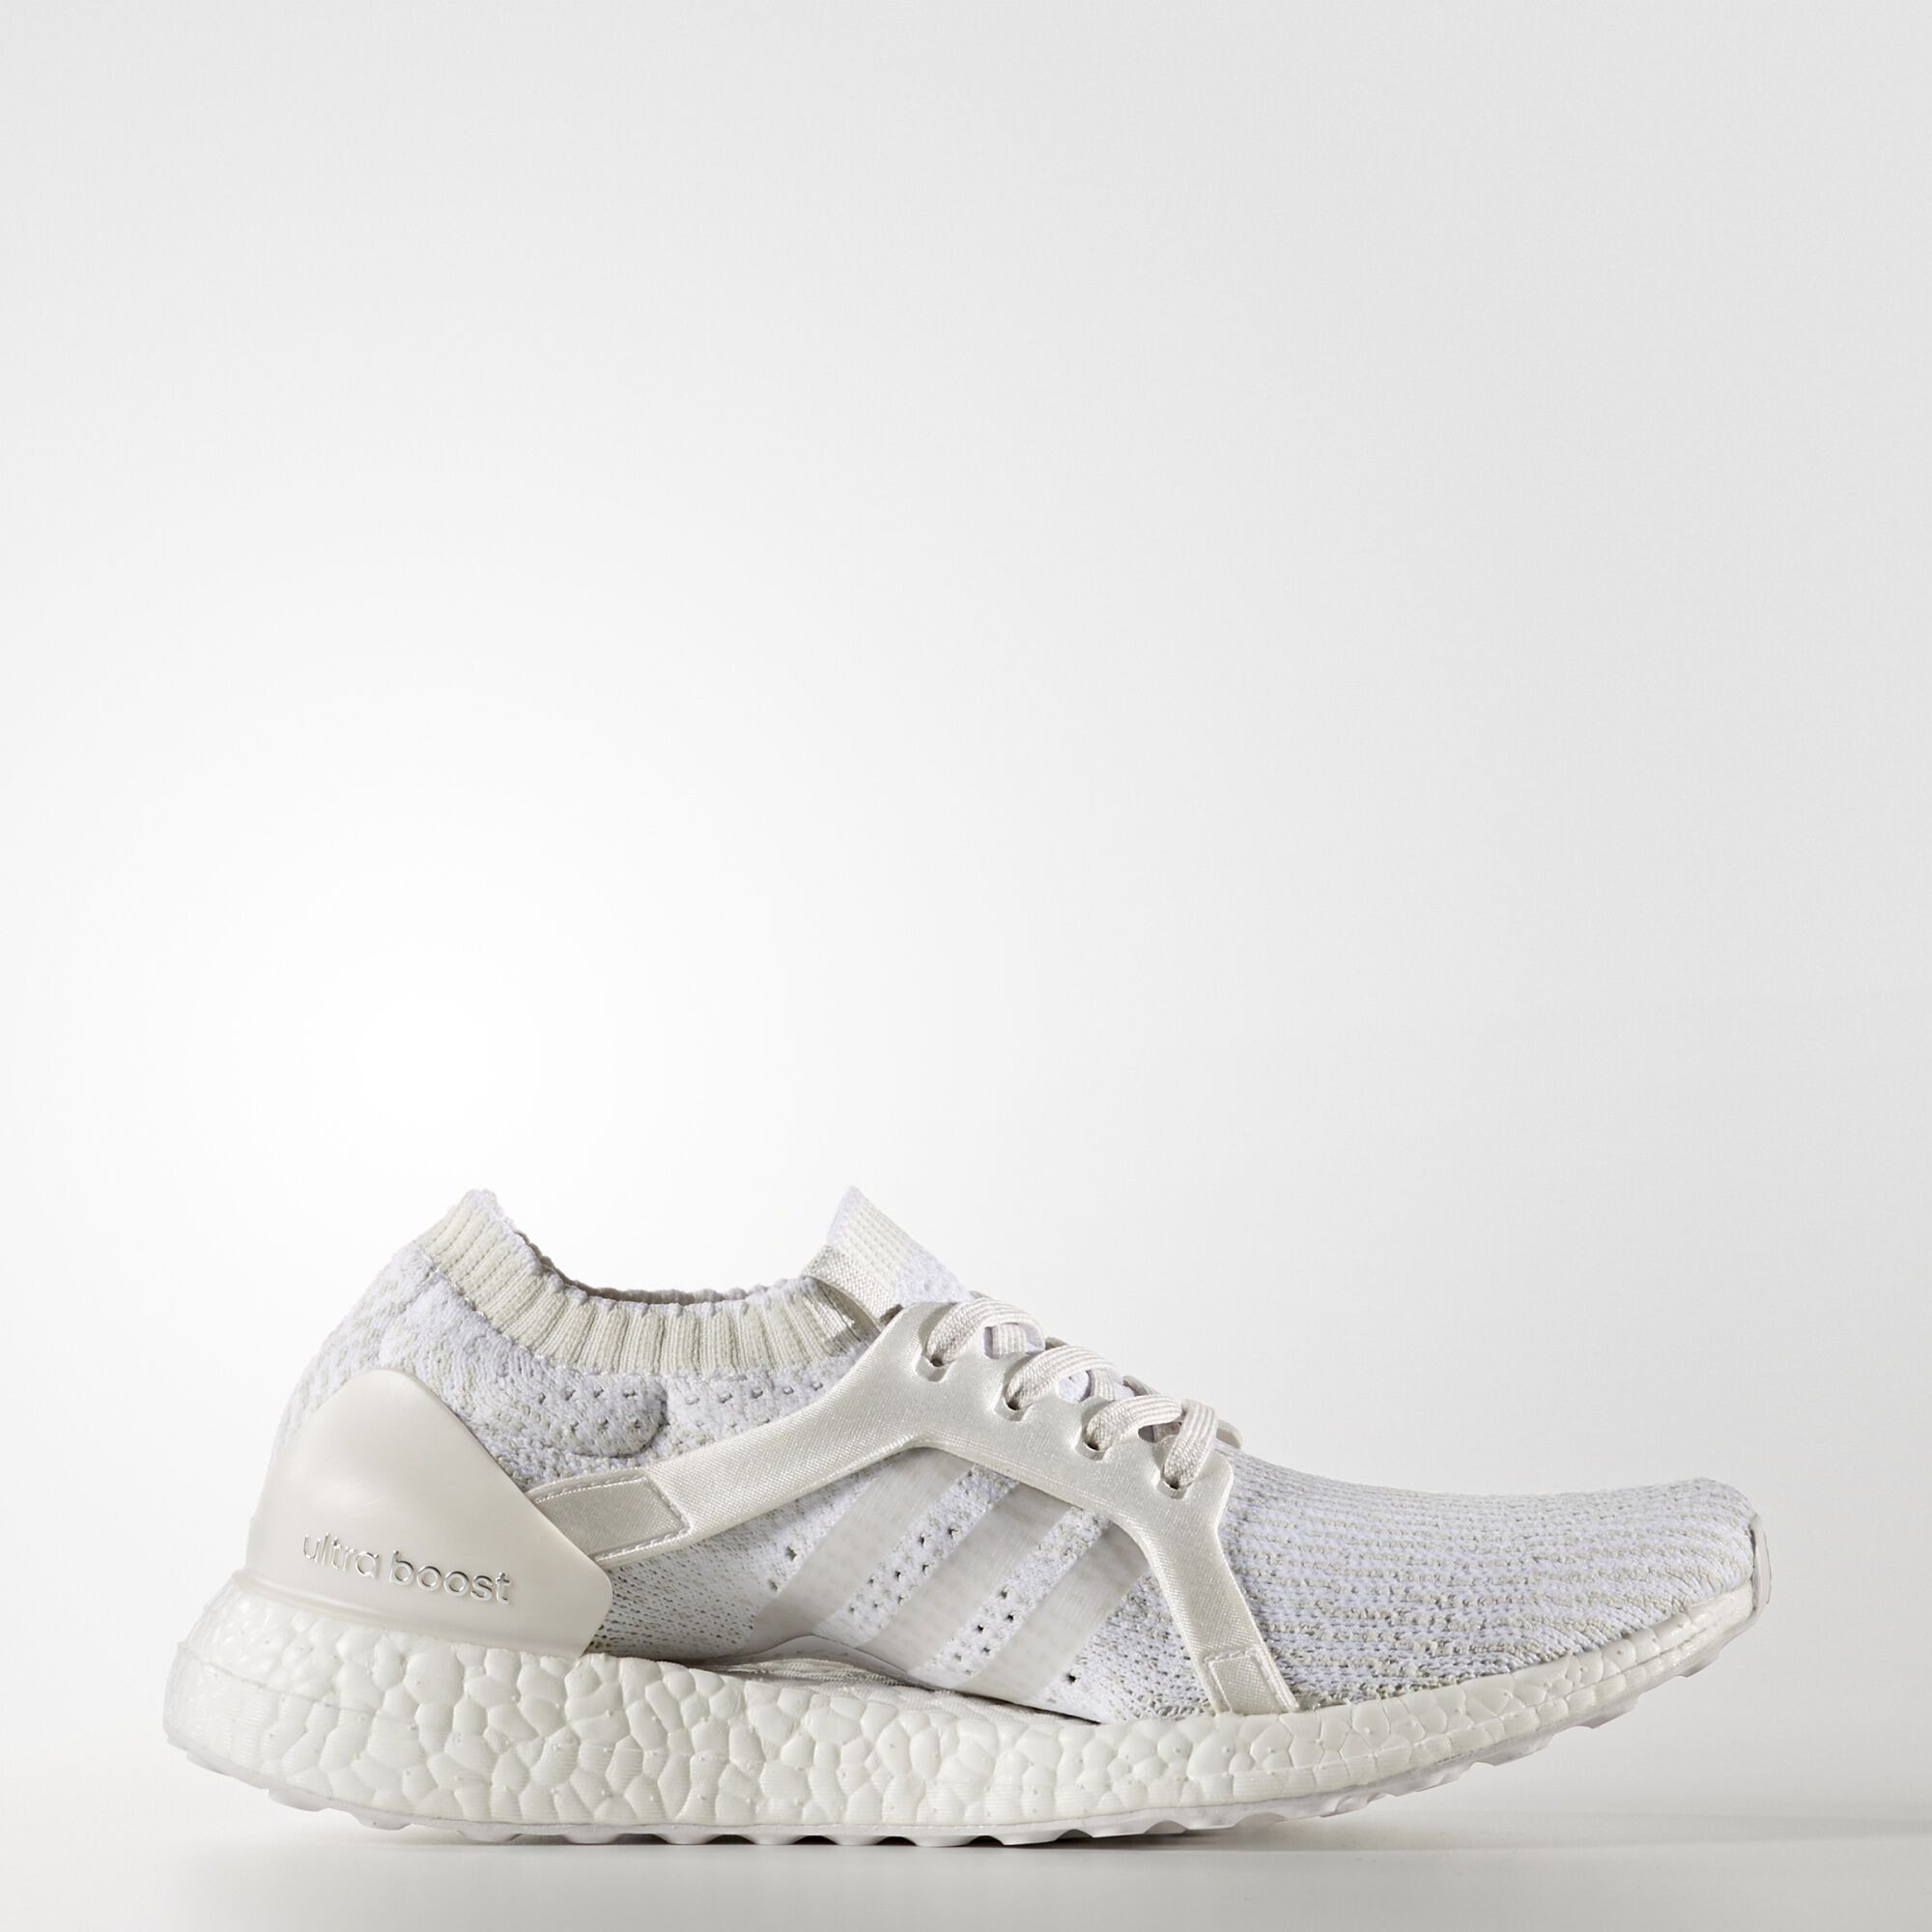 0aa42905fb1 nike ultra boost women all white dresses adidas yeezy boost 350 black and  gold